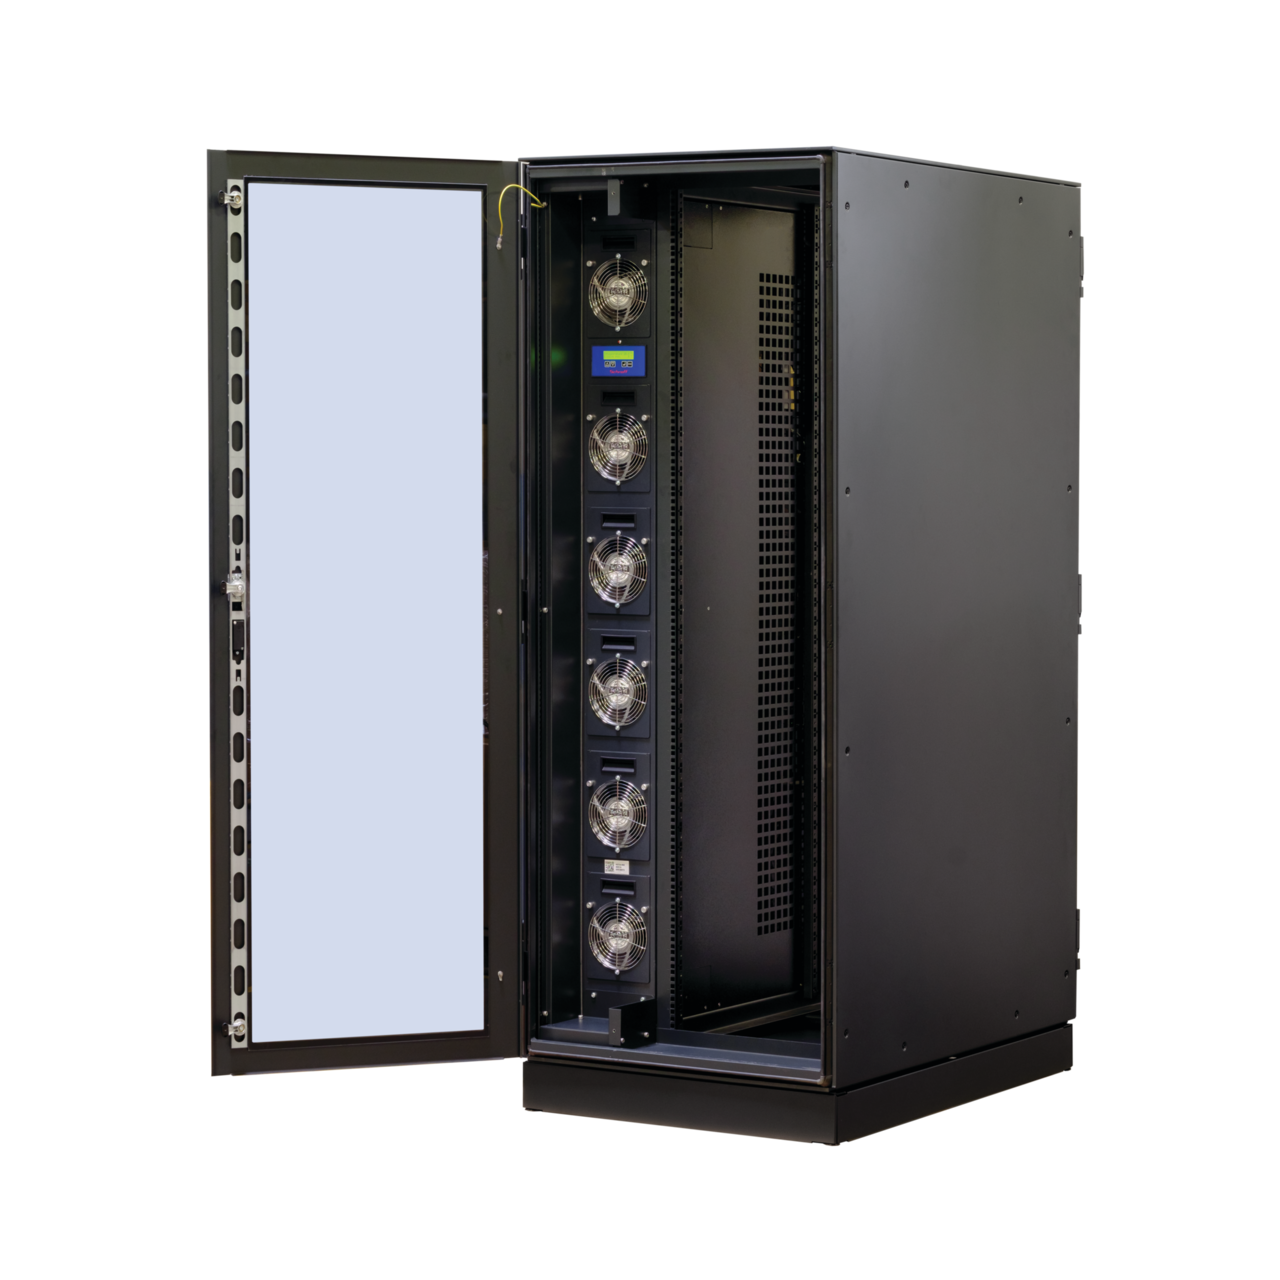 Imagen para Varistar LHX+, cabinet with single door, integrated airconditioner de Schroff - Norteamérica